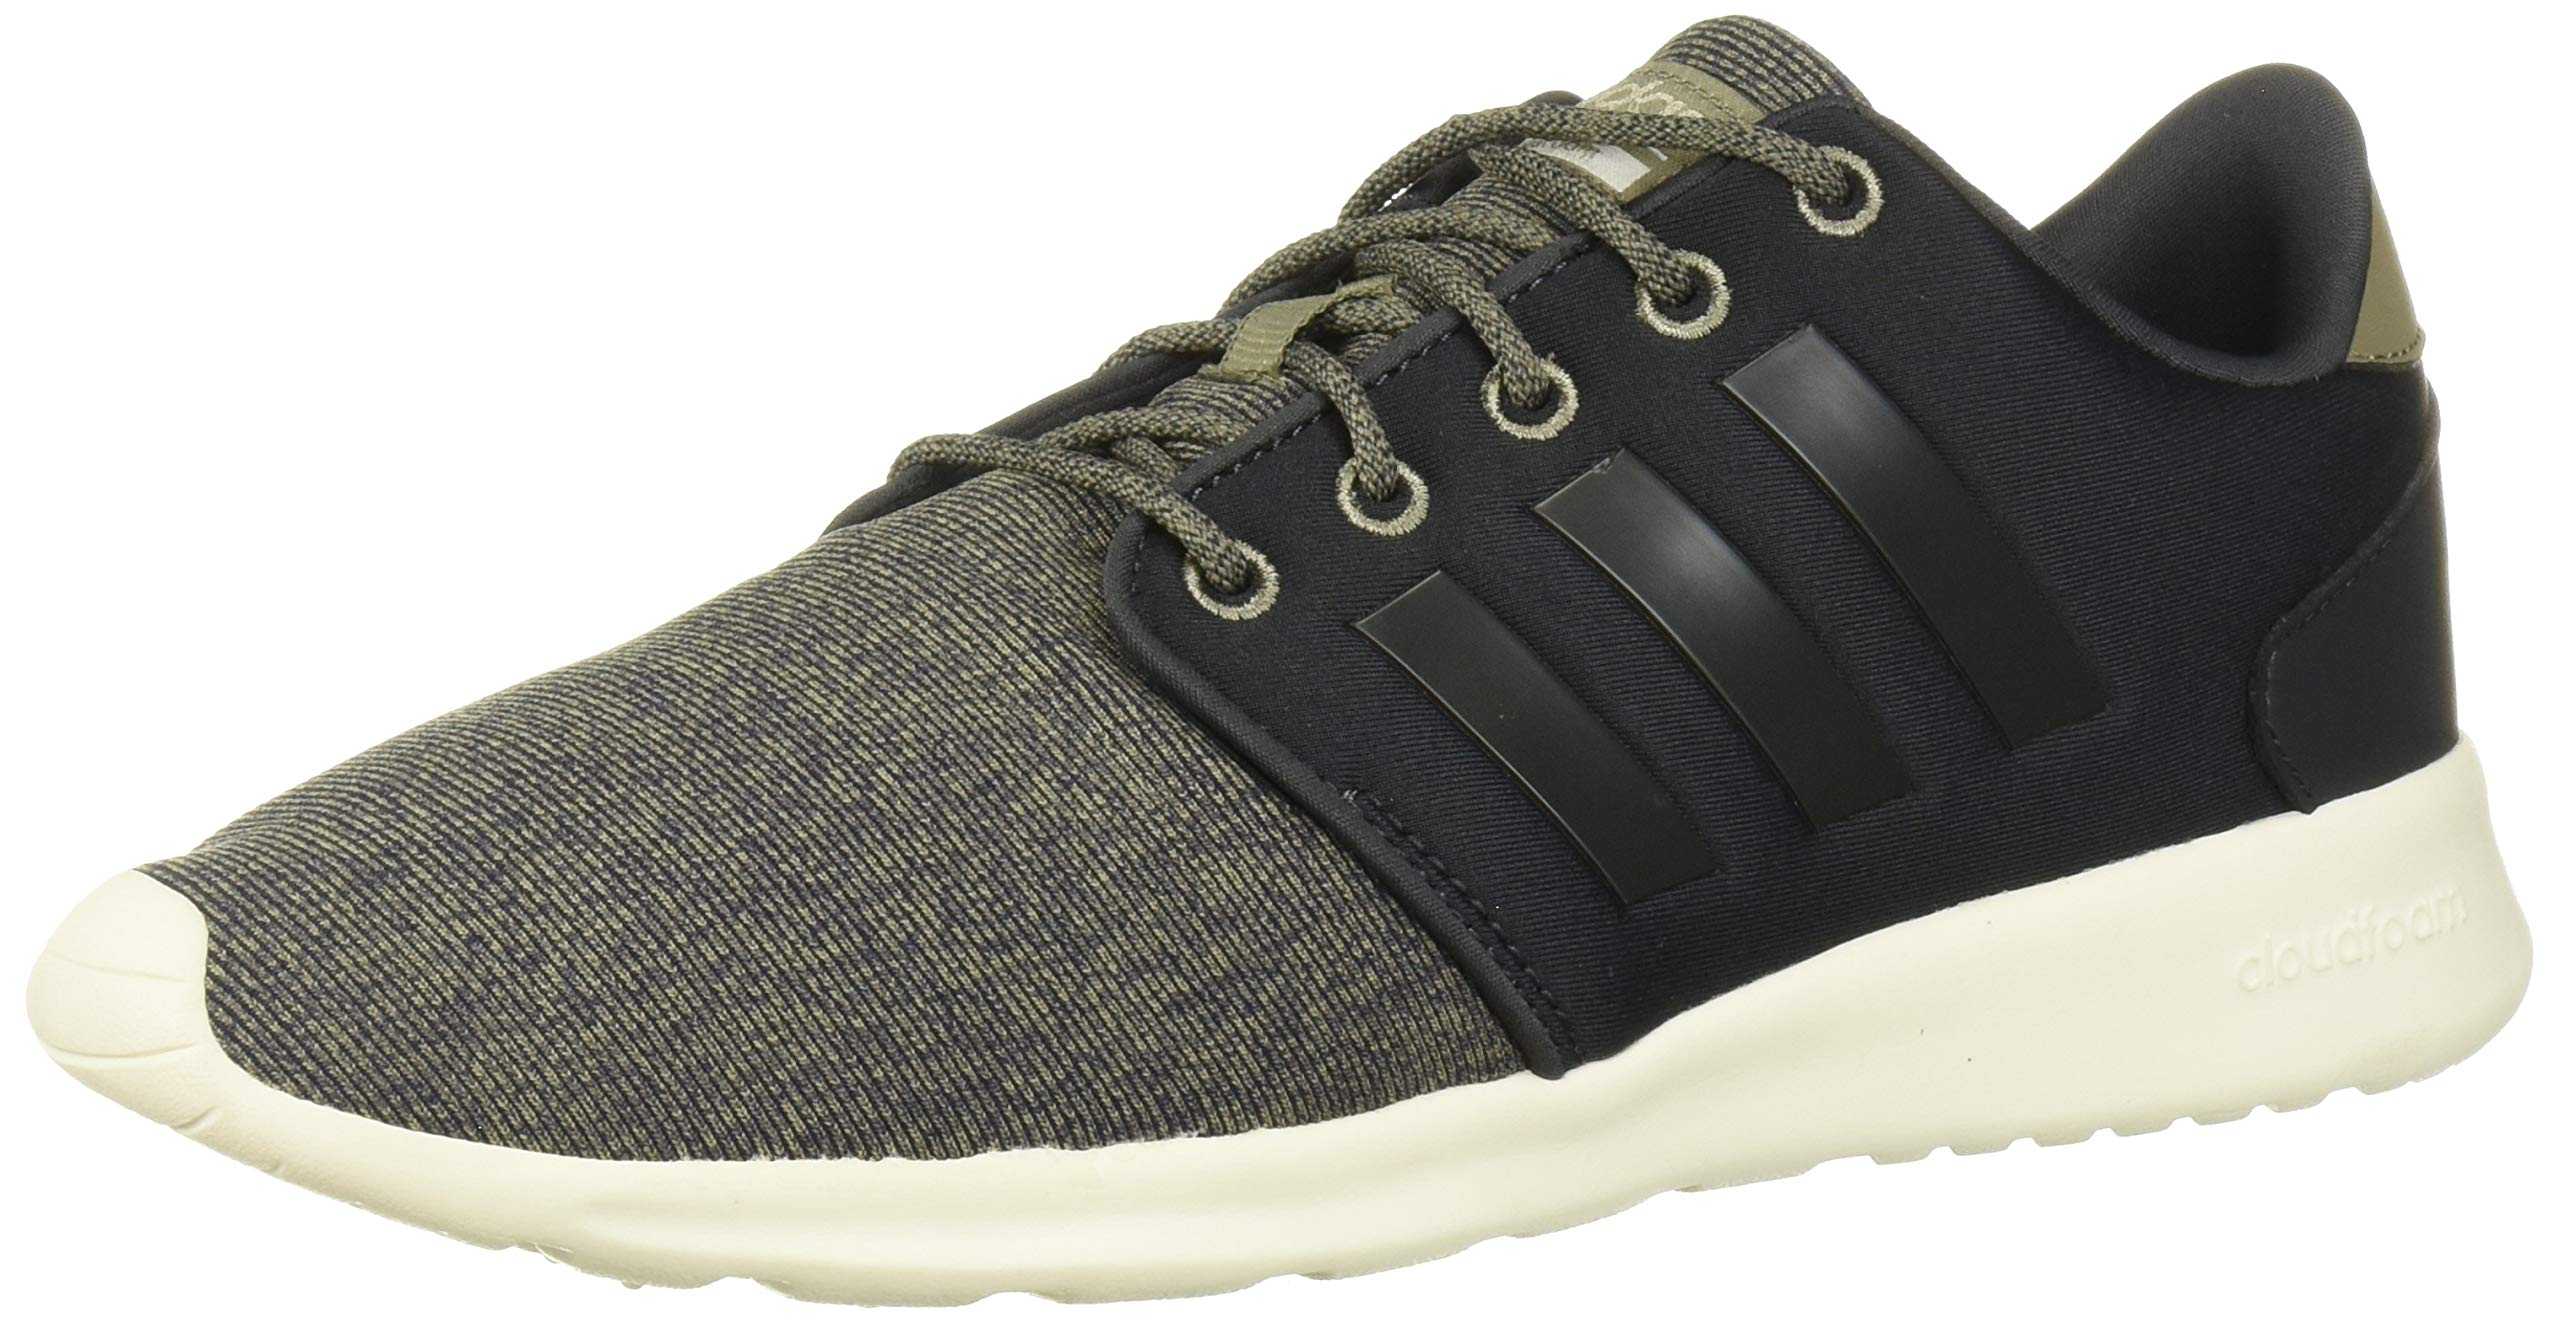 adidas Women's Cloudfoam QT Racer Running Shoe Carbon/Trace Cargo, 9 M US by adidas